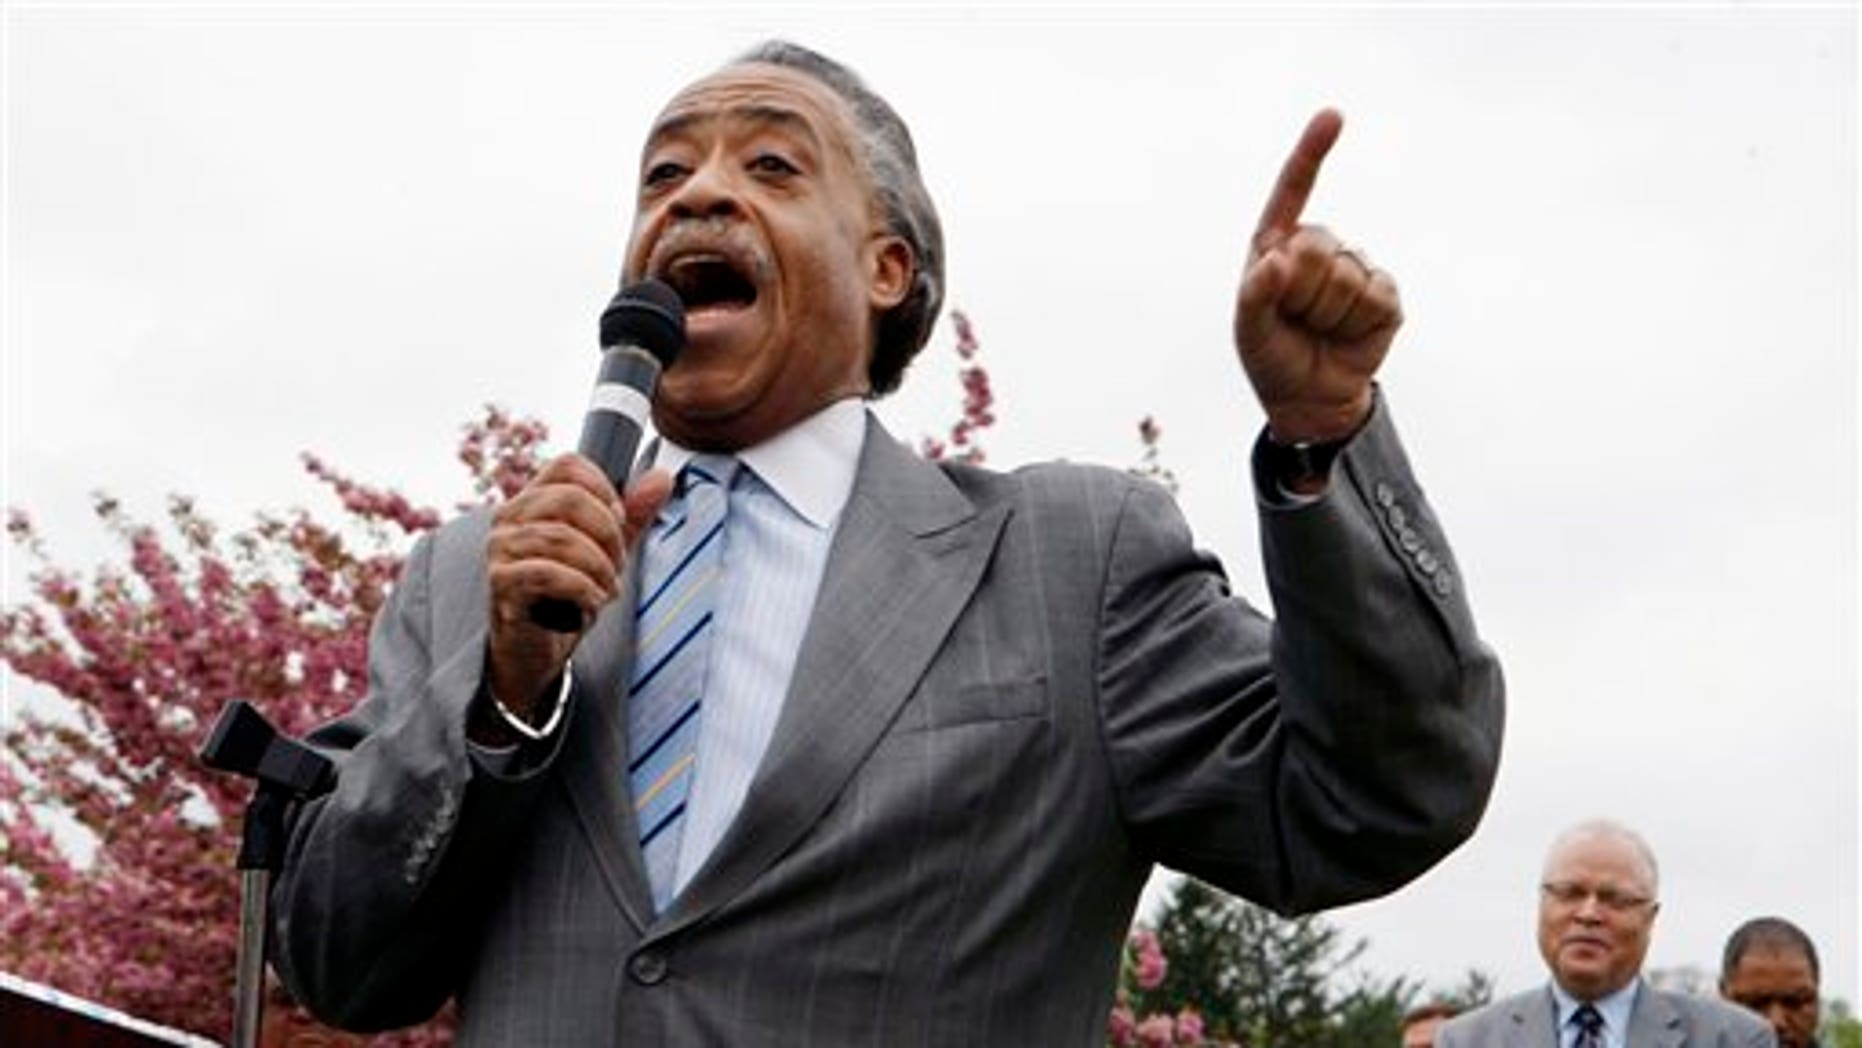 April 26: Rev. AL Sharpton addresses a group of workers and supporters in Vineland, N.J., urging them to demand justice for themselves and the Vineland Development Center's residents.